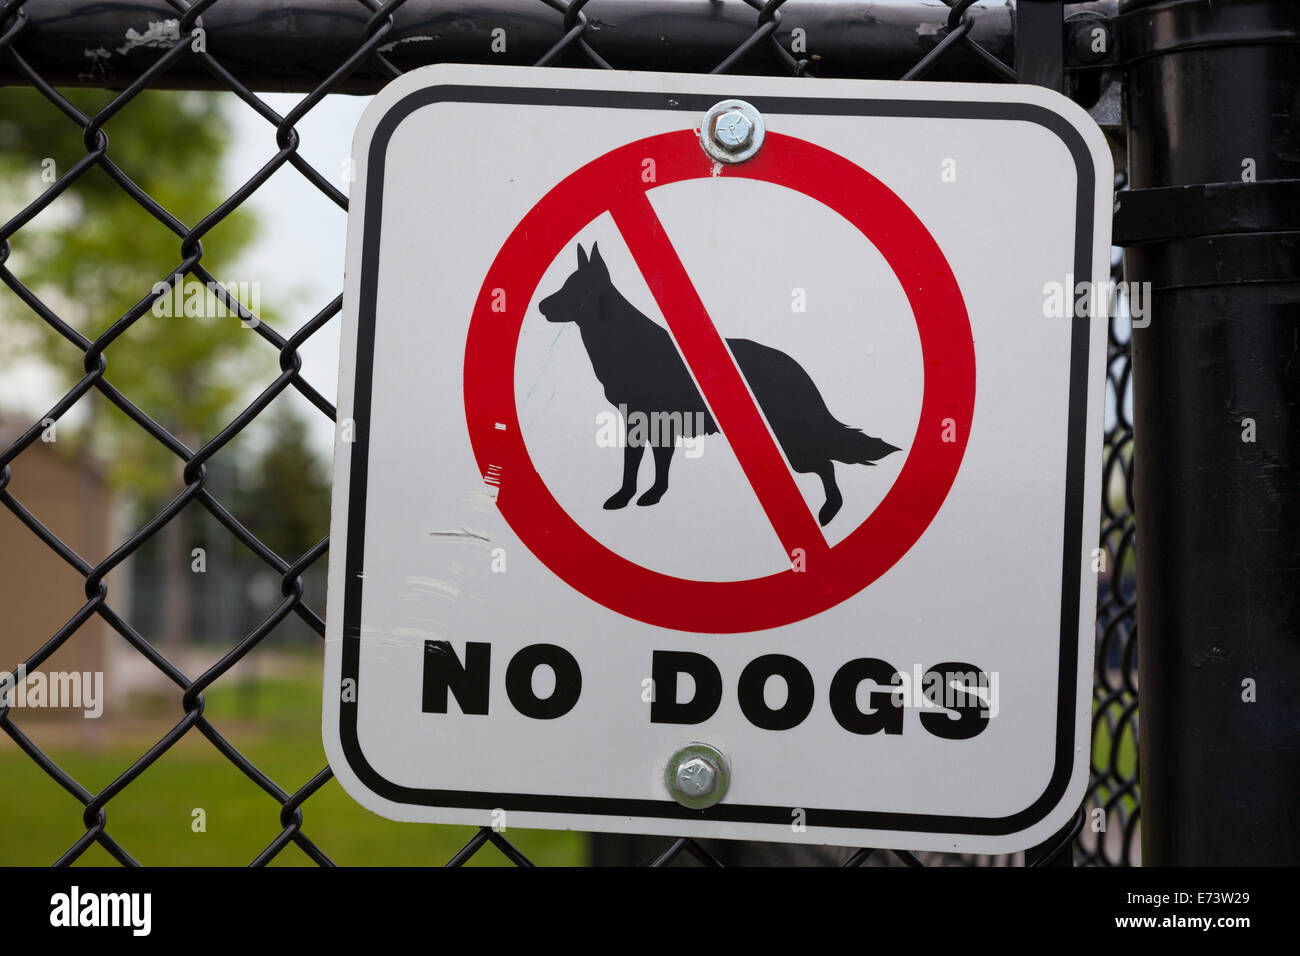 A 'no dogs' sign posted on a fence in a park. Whitby, Ontario, Canada. - Stock Image